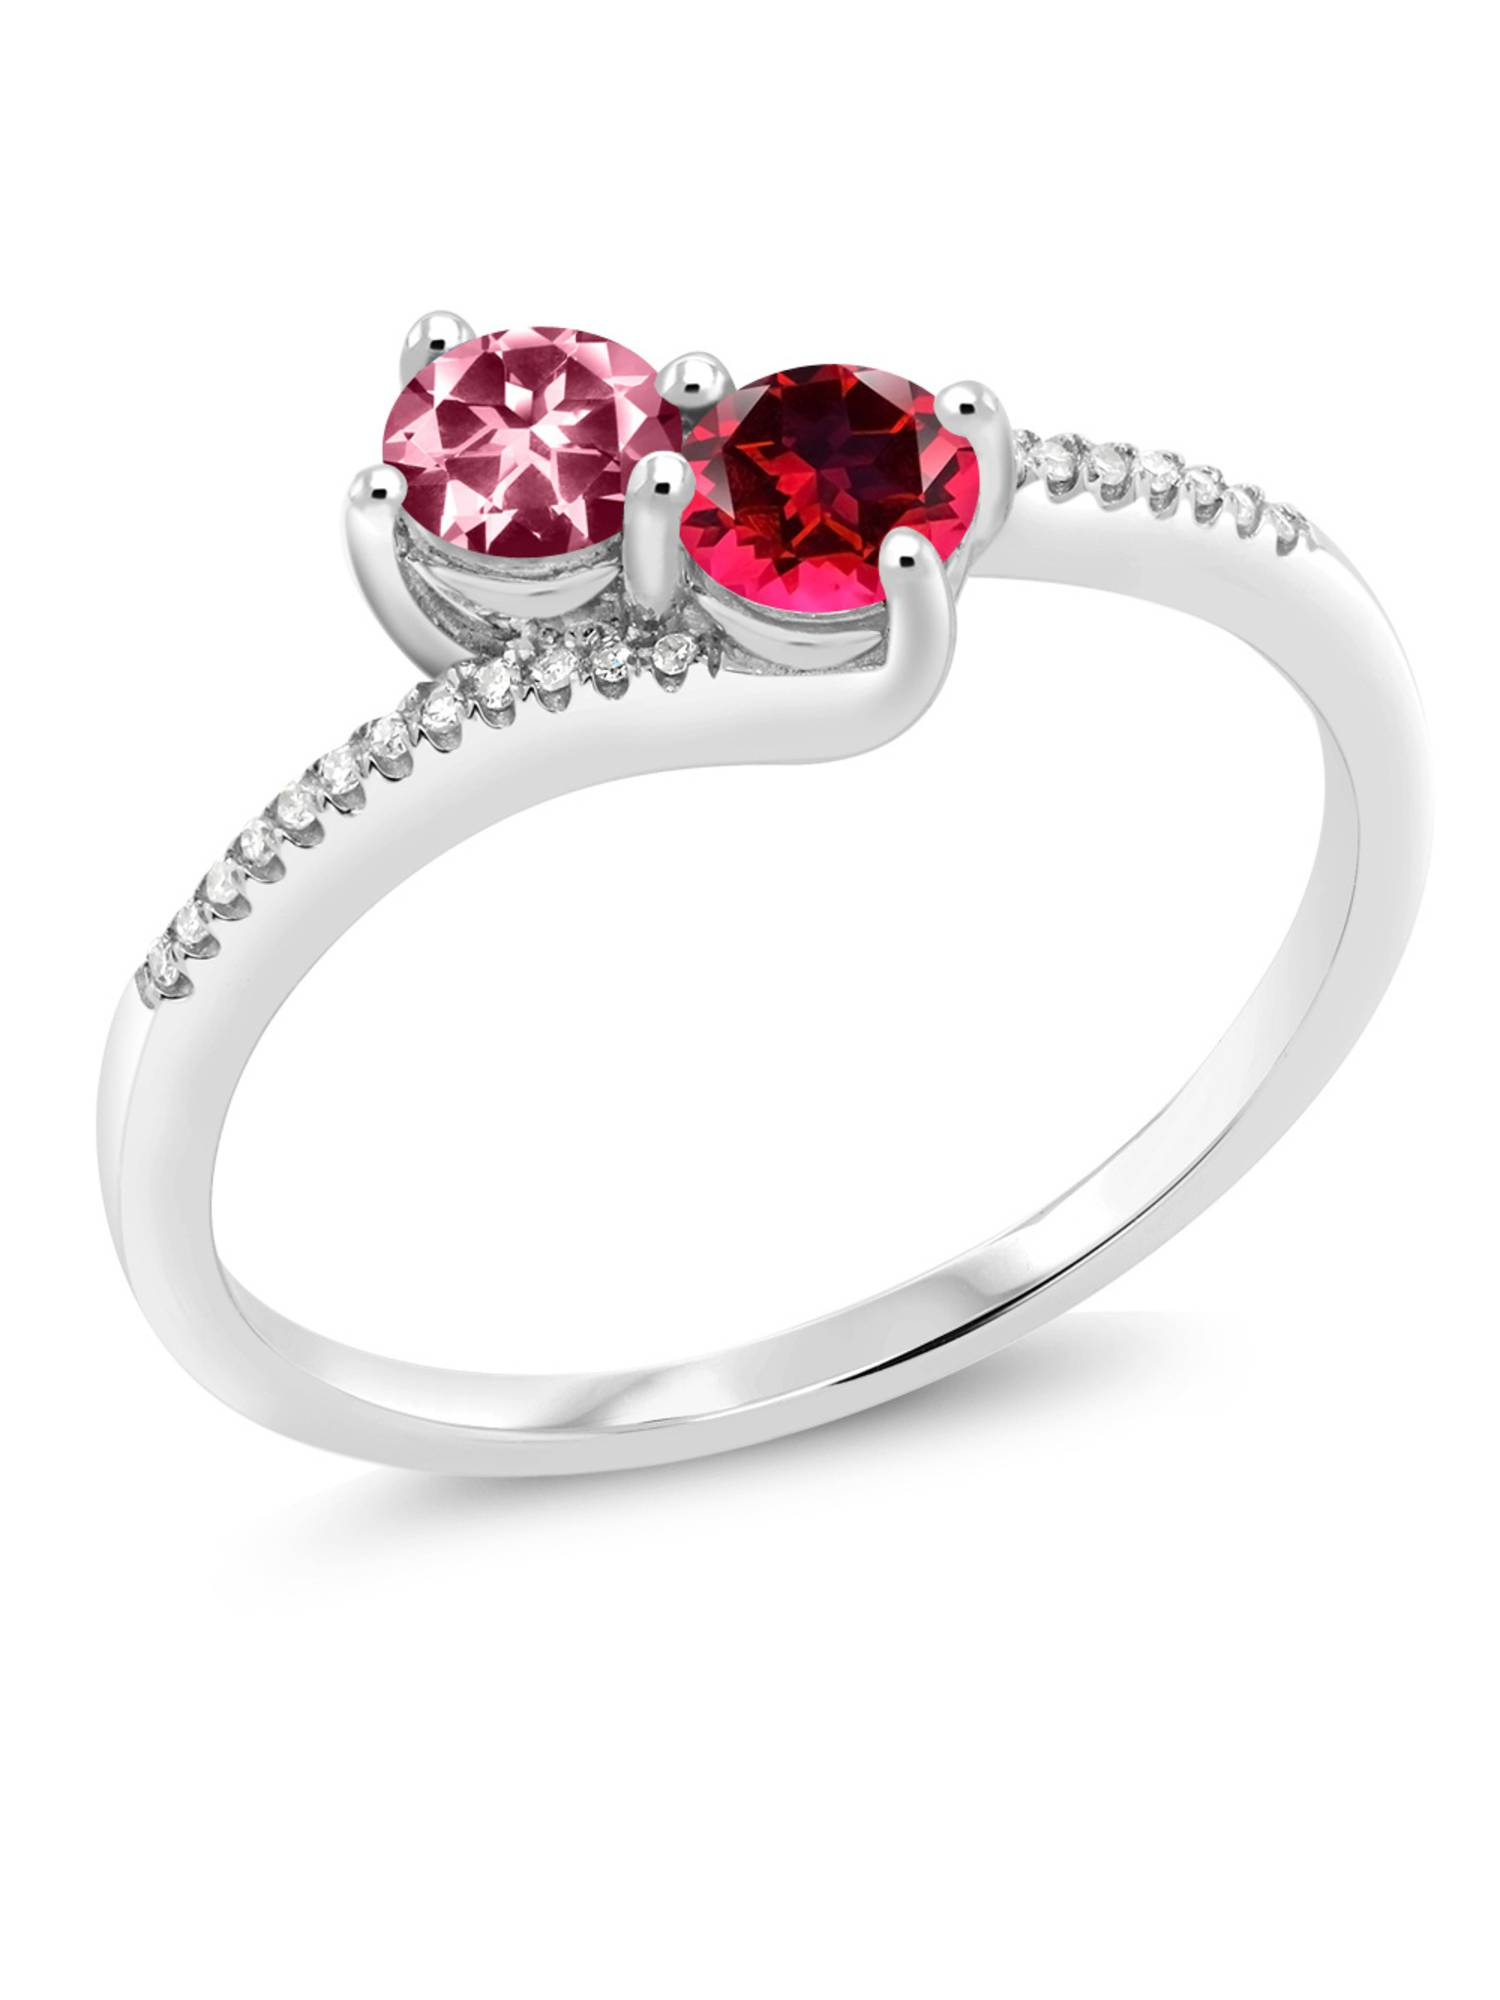 10K White Gold Fashion Right-Hand Ring 4mm Set with Pink Topaz from Swarovski by